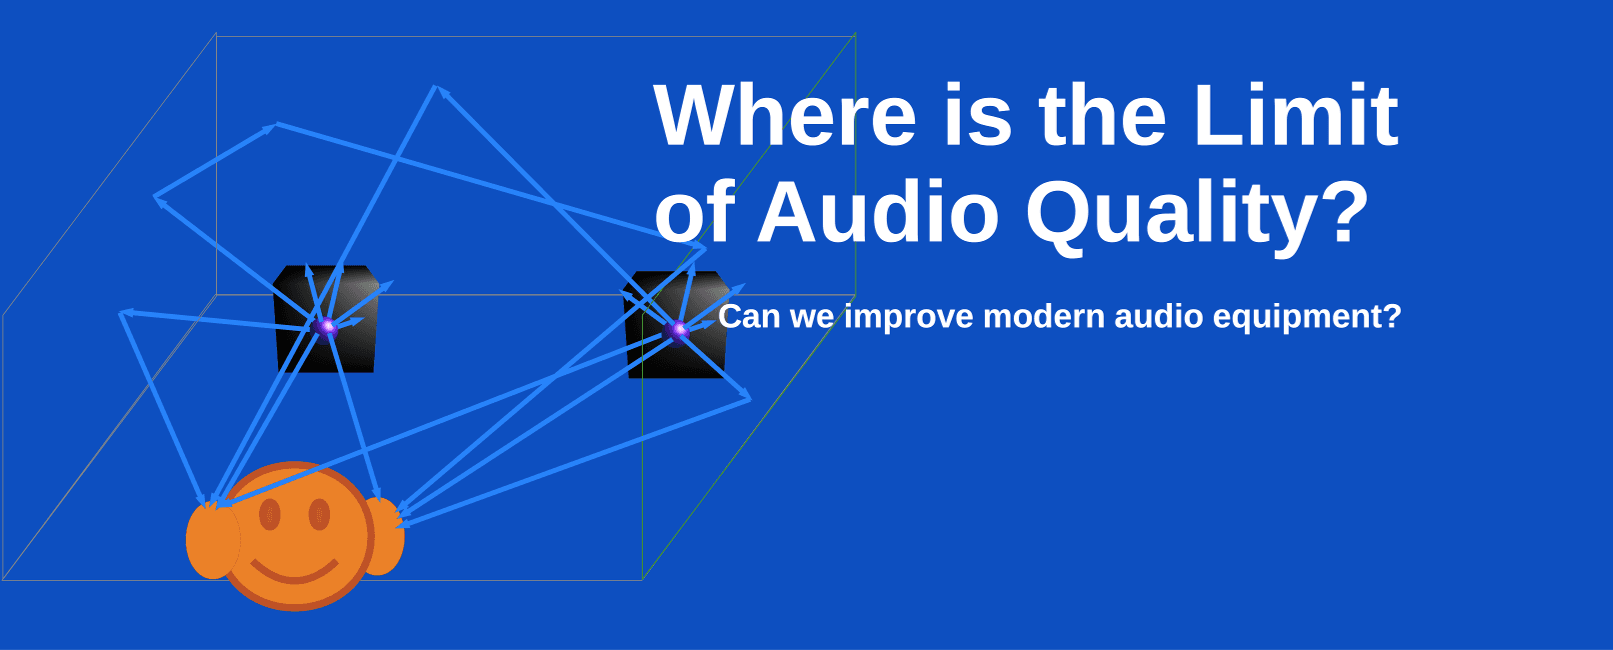 Where is the Limit of Audio Quality?